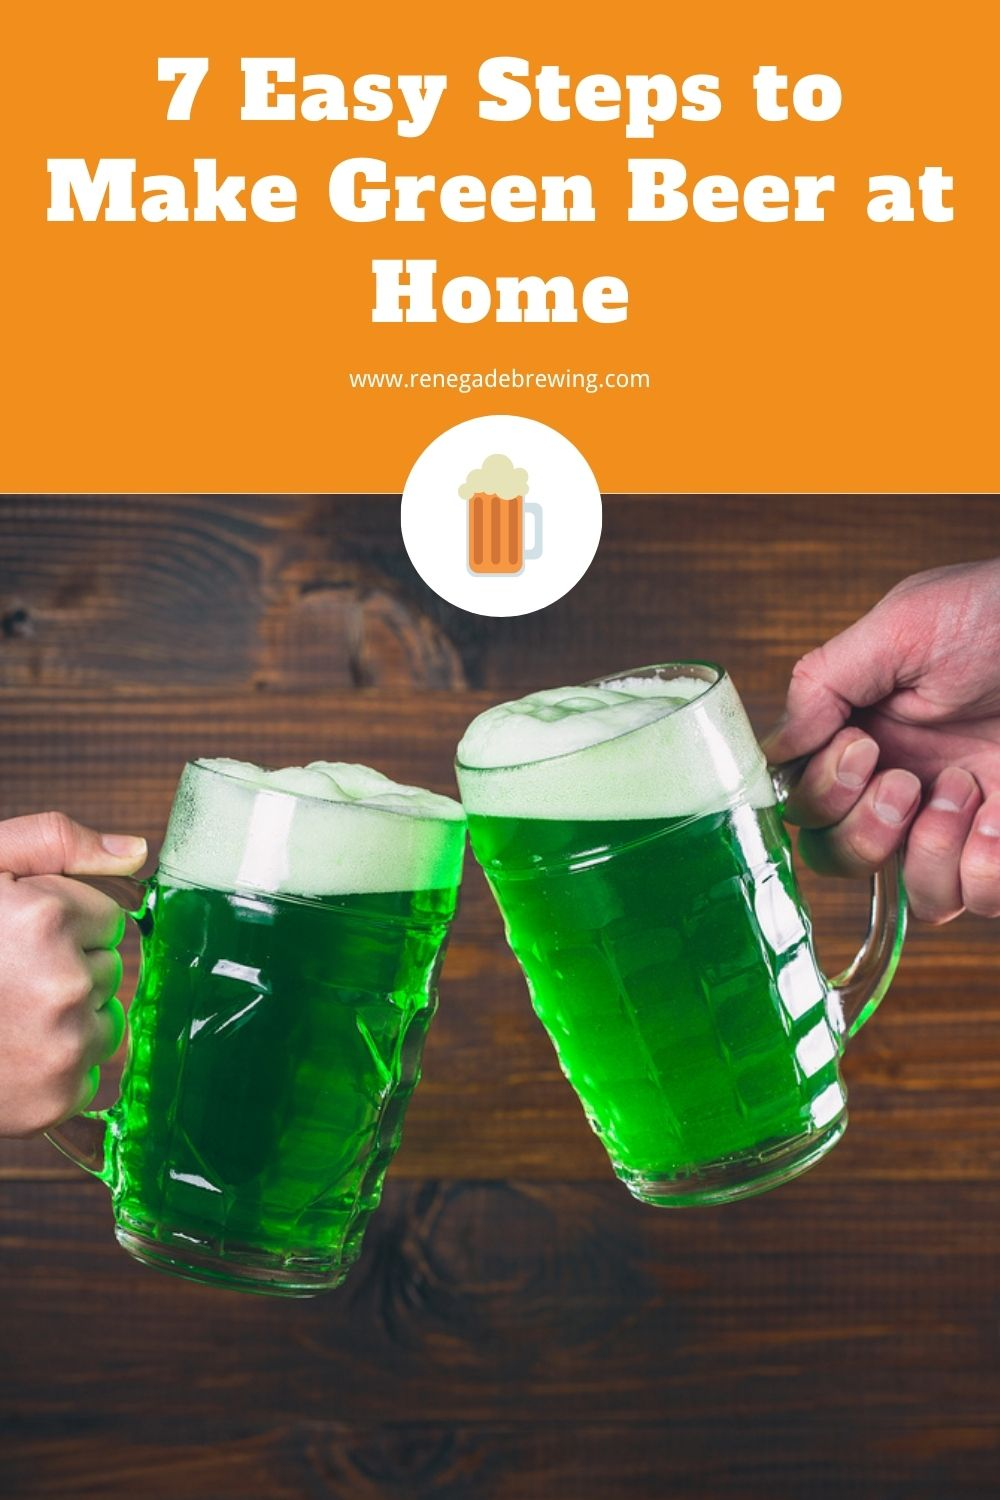 7 Easy Steps to Make Green Beer at Home 2